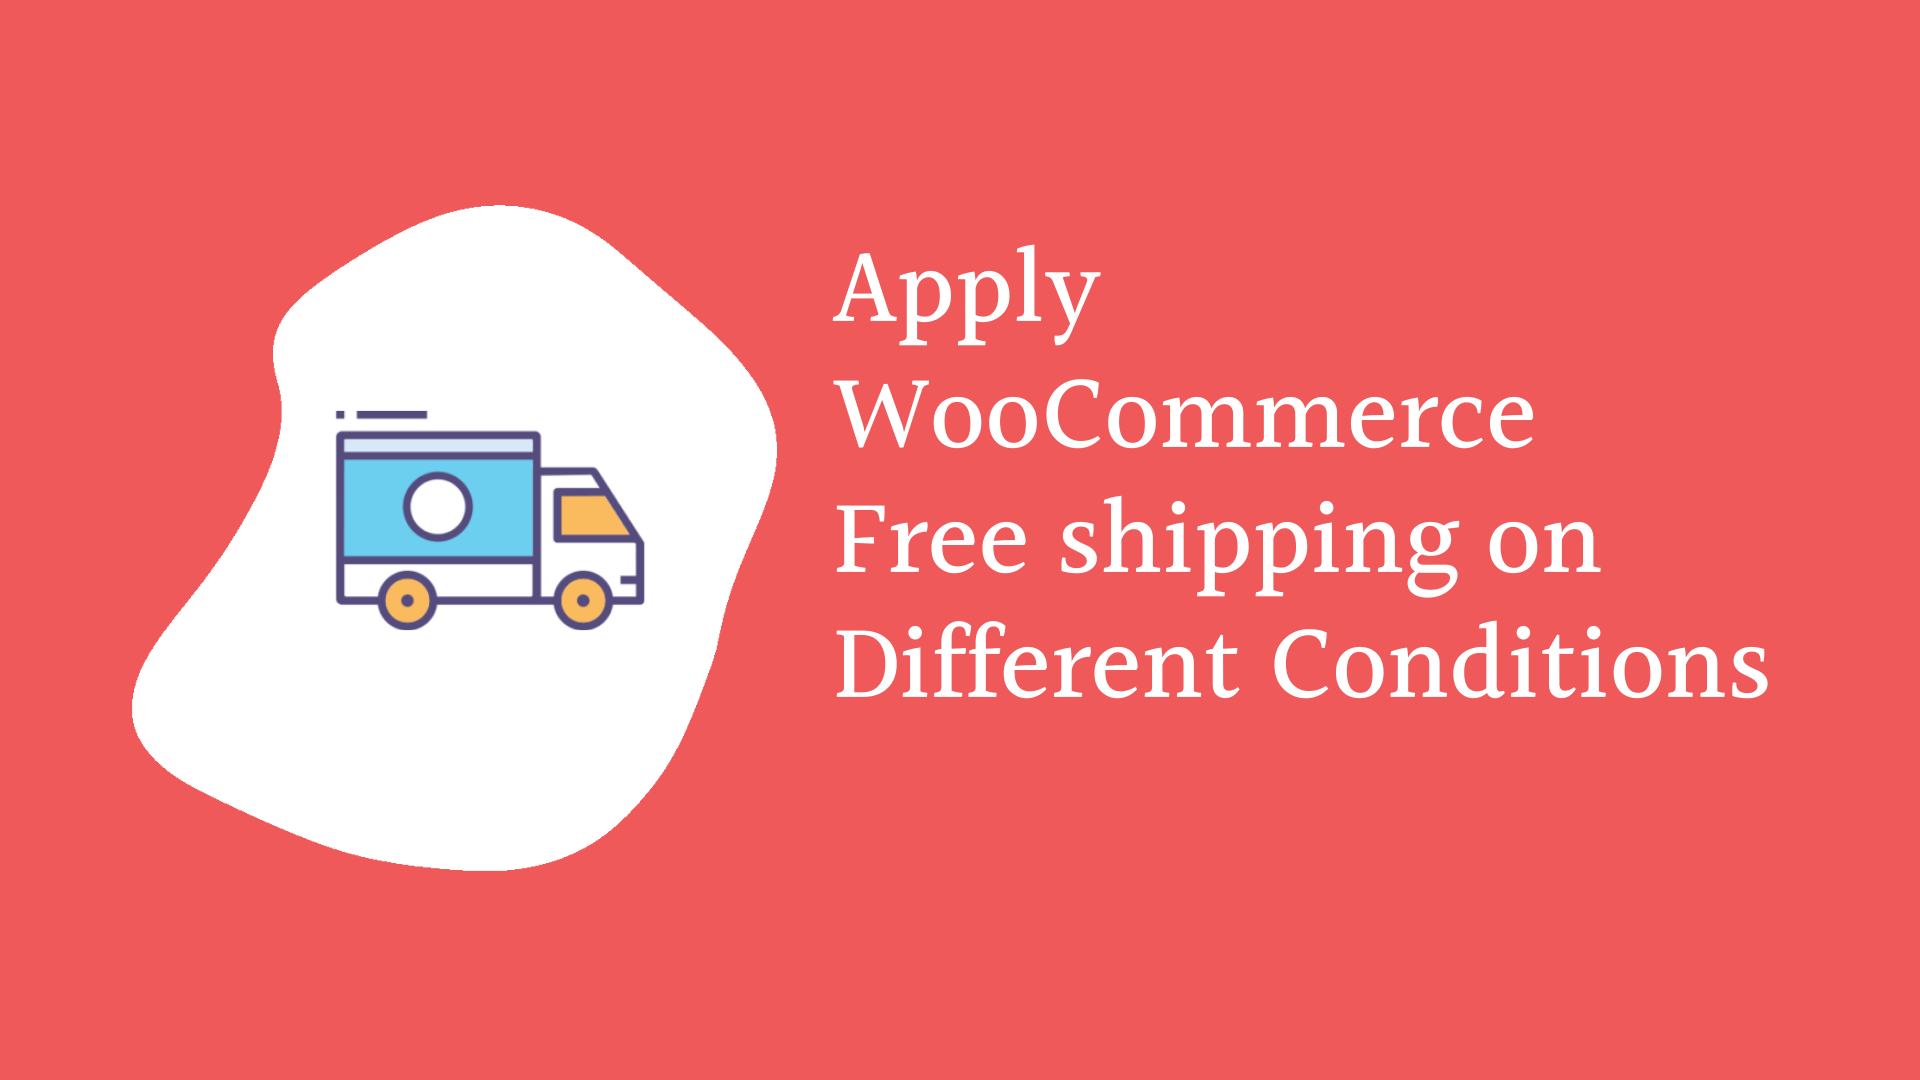 Apply WooCommerce free shipping for different Conditions